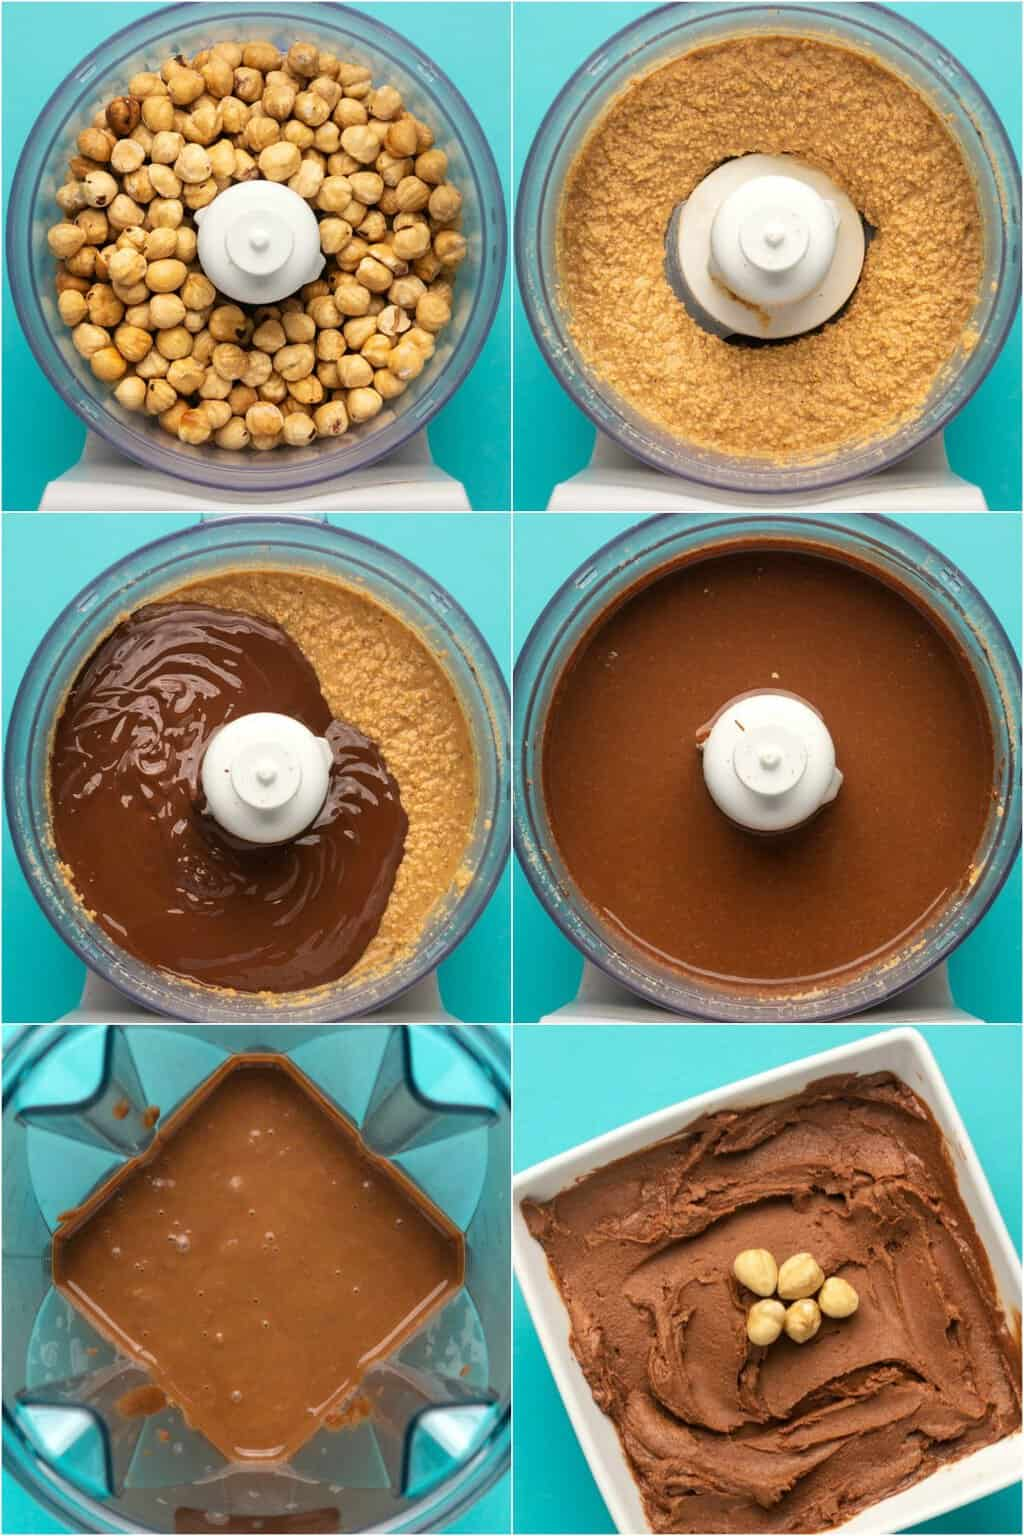 Step by step process photo collage of making vegan nutella.